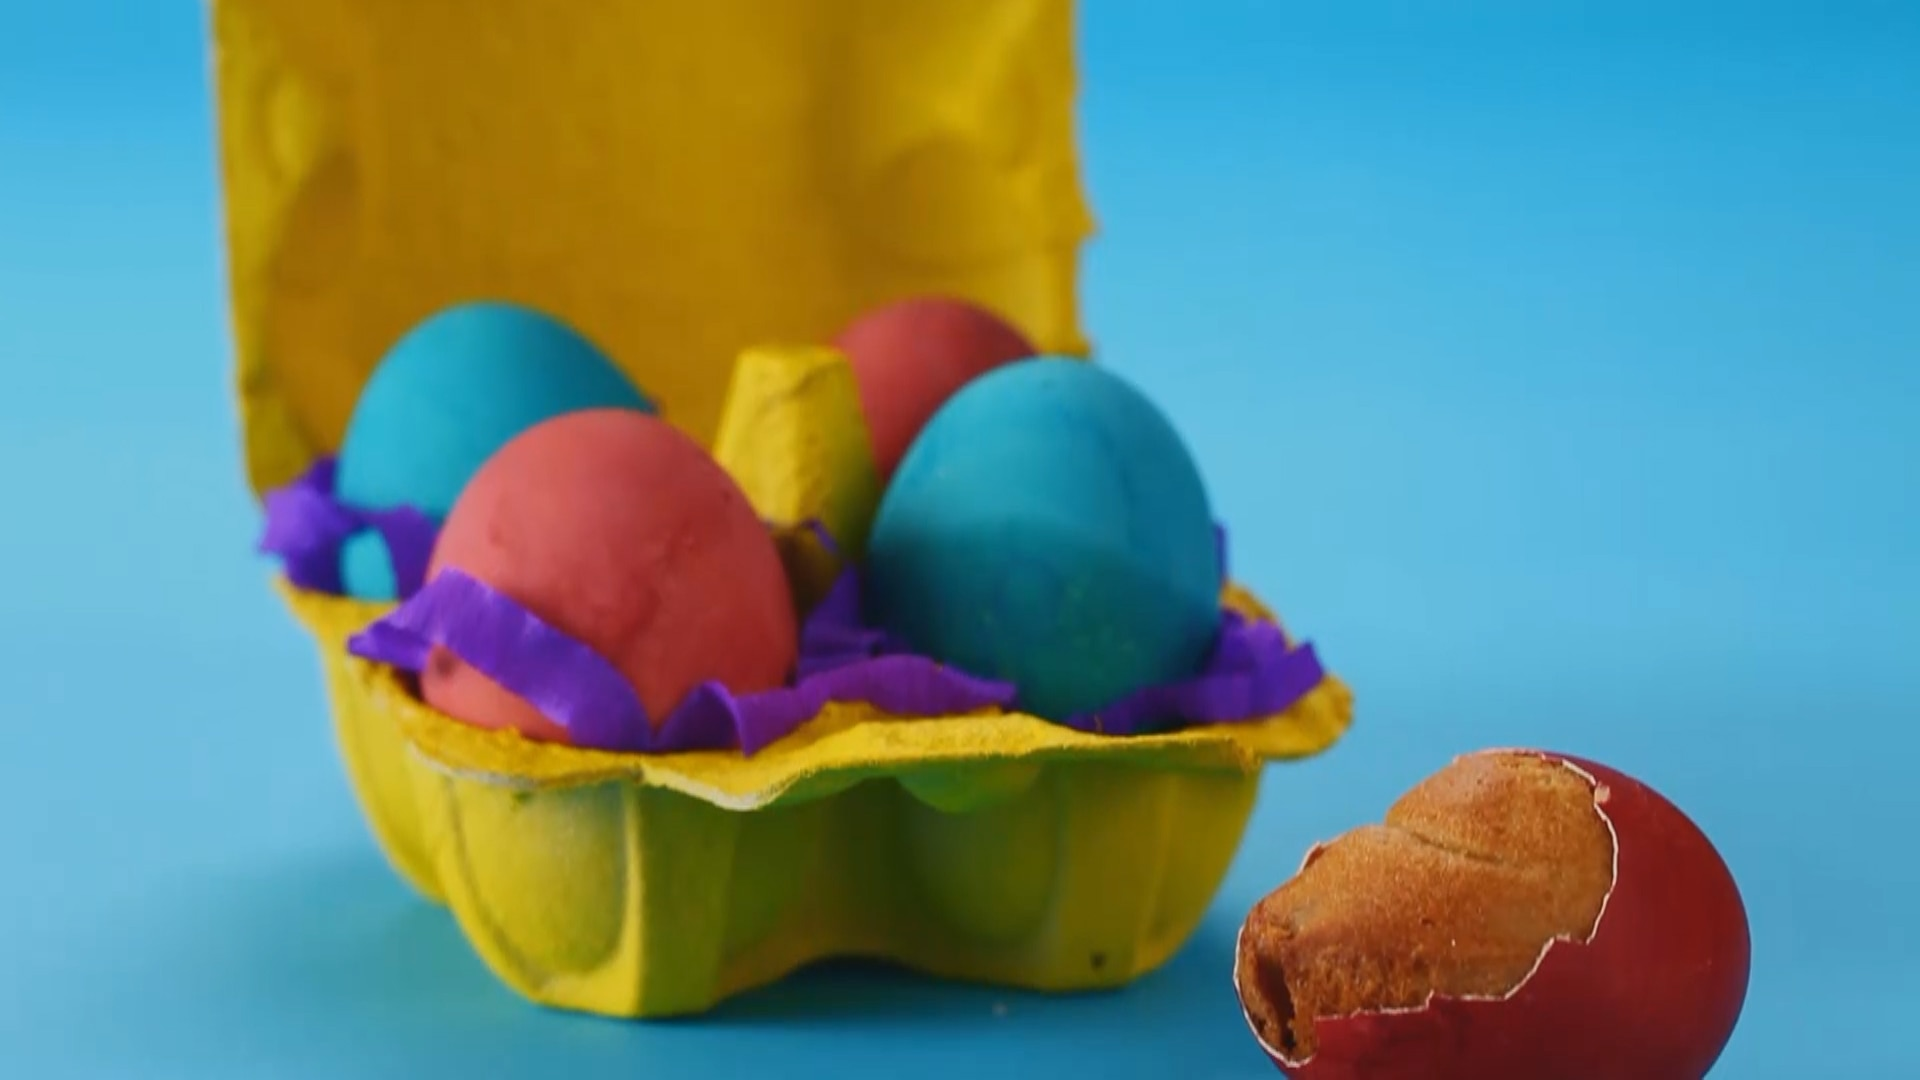 How To Make An Easter Egg Surprise